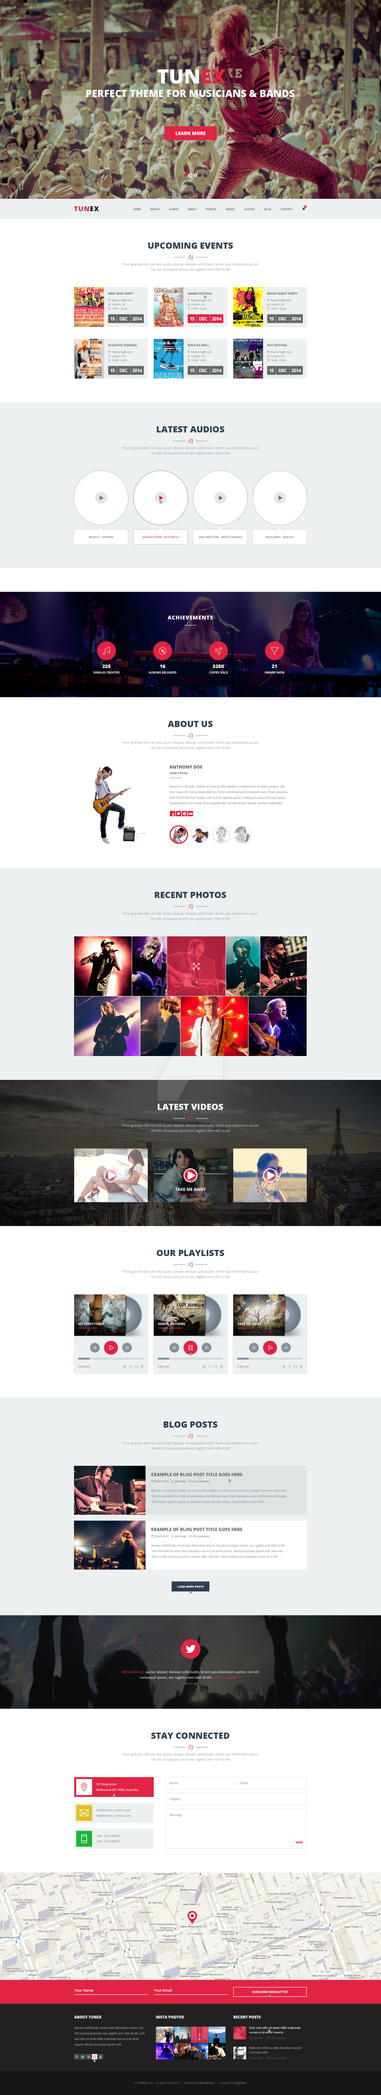 TUNEX: Music and Entertainment PSD Template by wnabcreative